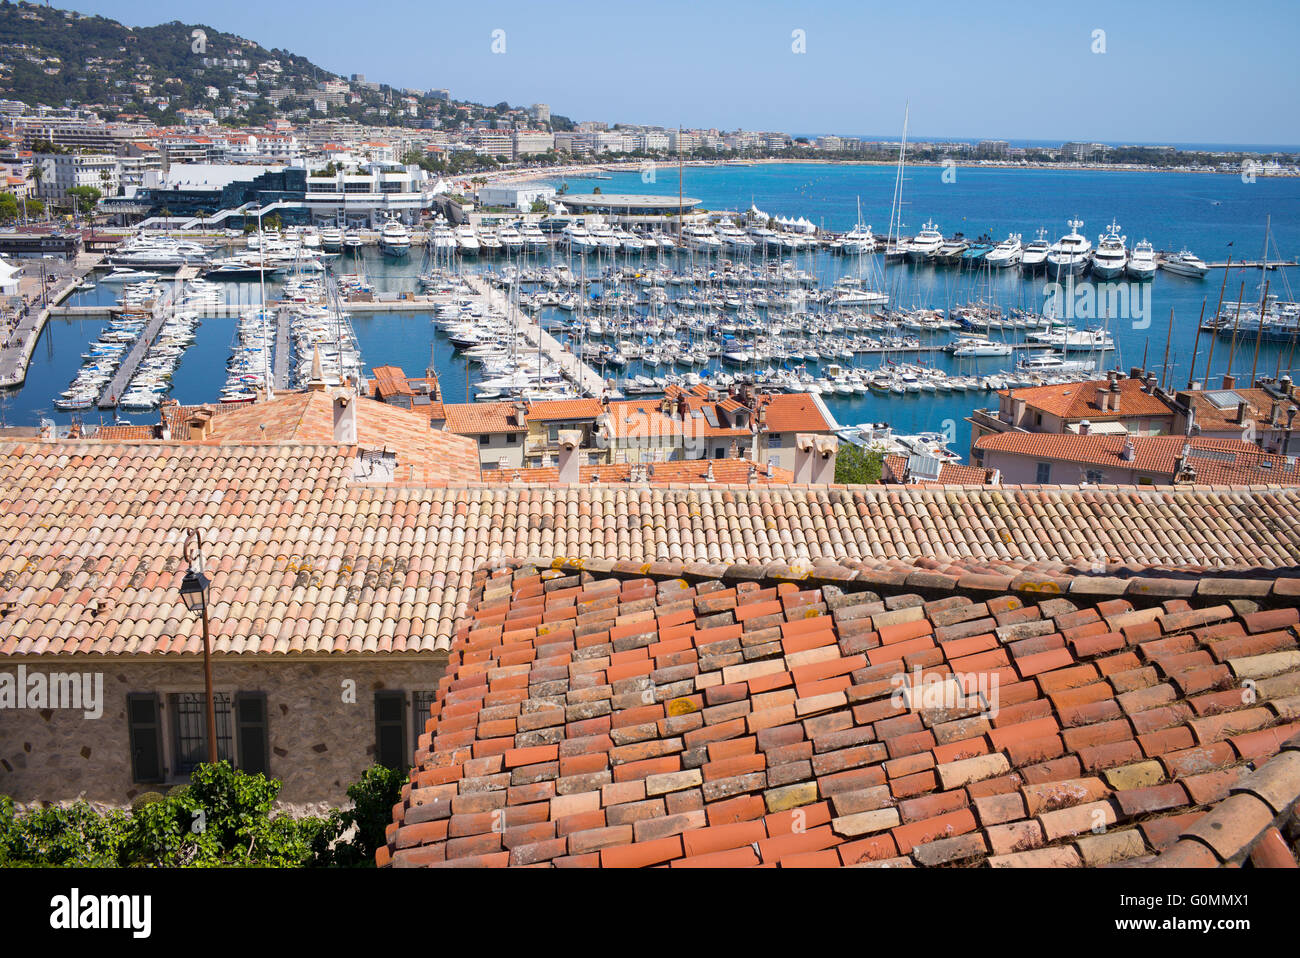 The harbour at Cannes, France seen from the old town of Le Suquet - Stock Image